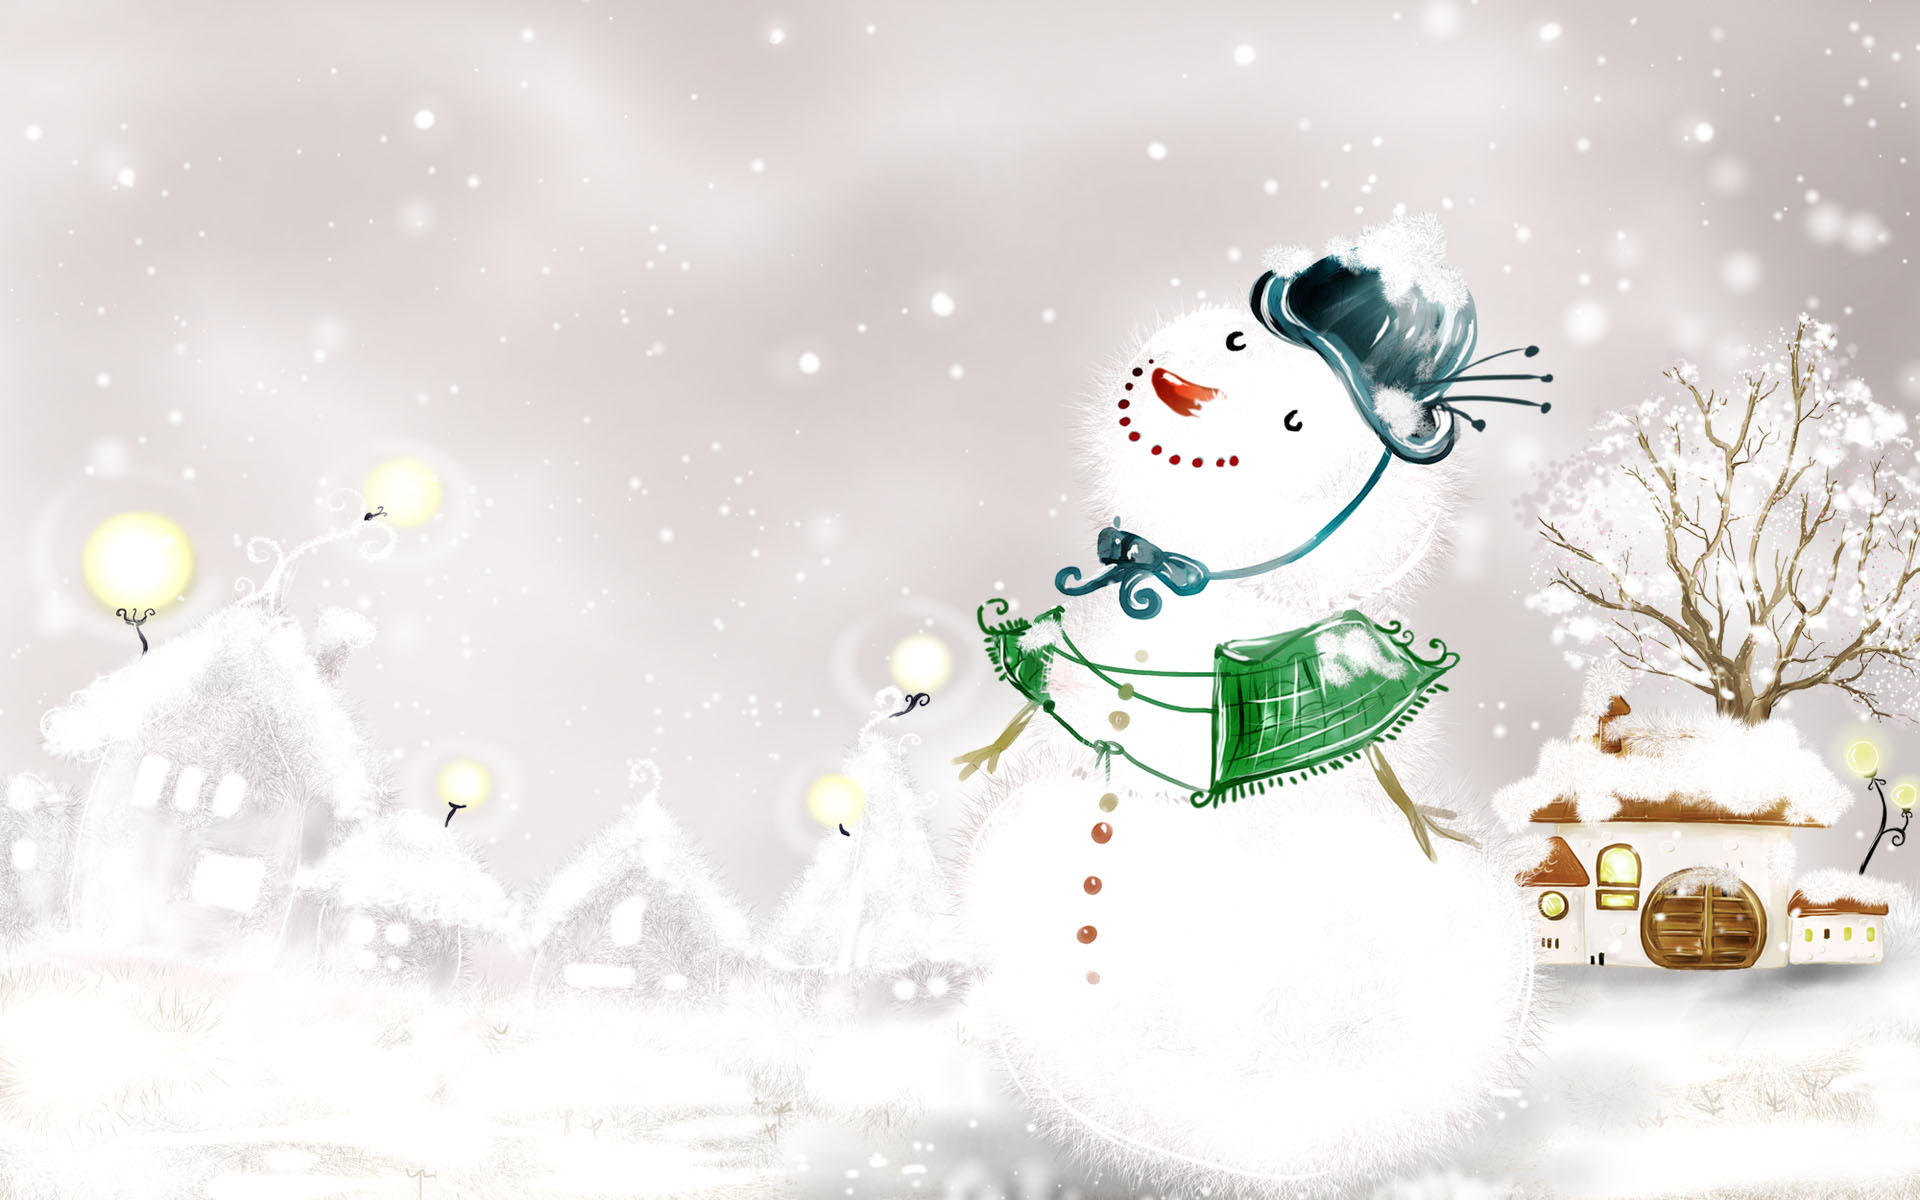 winter snowman wallpaper 2015   Grasscloth Wallpaper 1920x1200